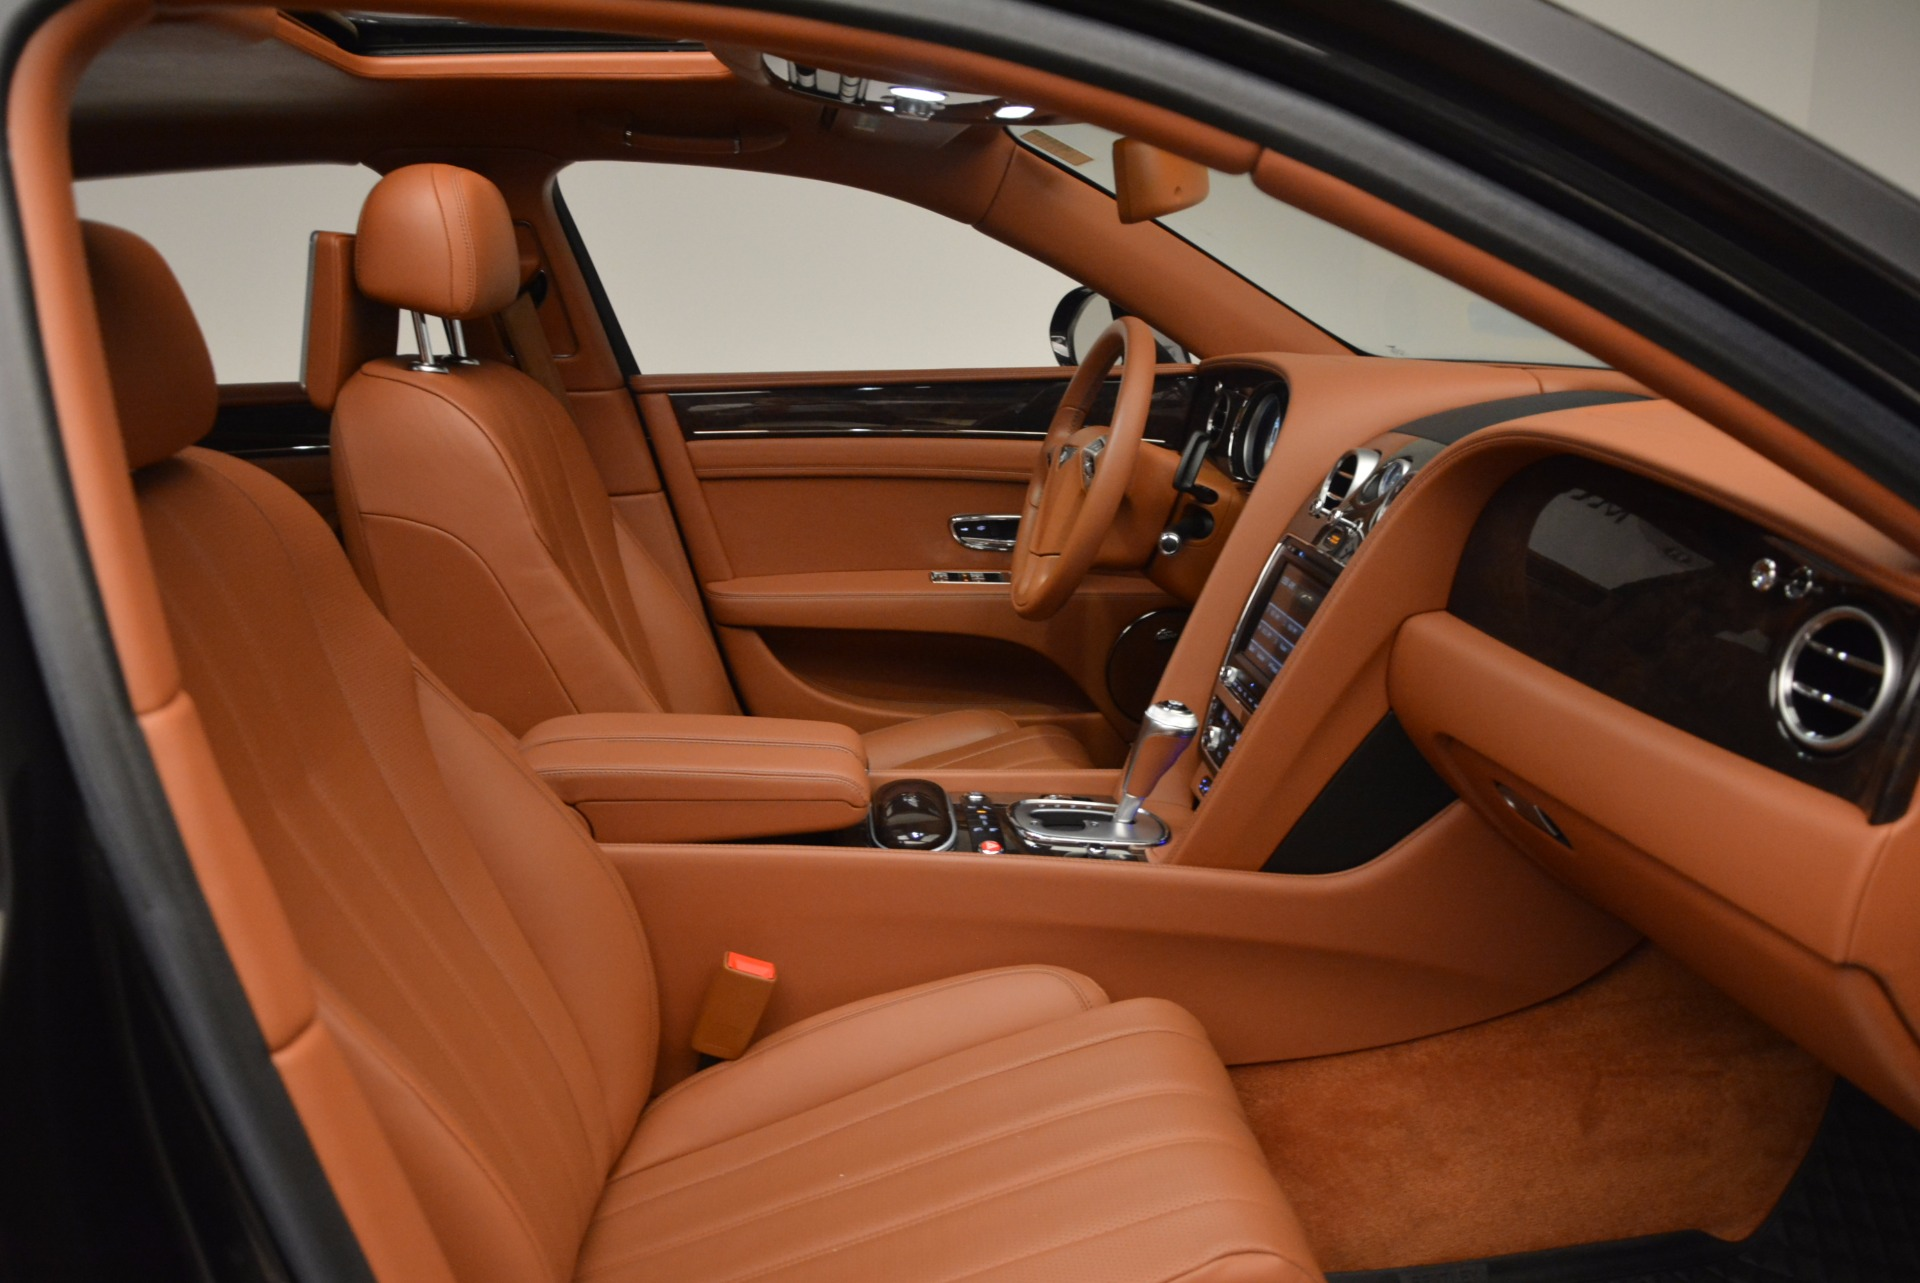 Used 2014 Bentley Flying Spur W12 For Sale In Greenwich, CT 1598_p39